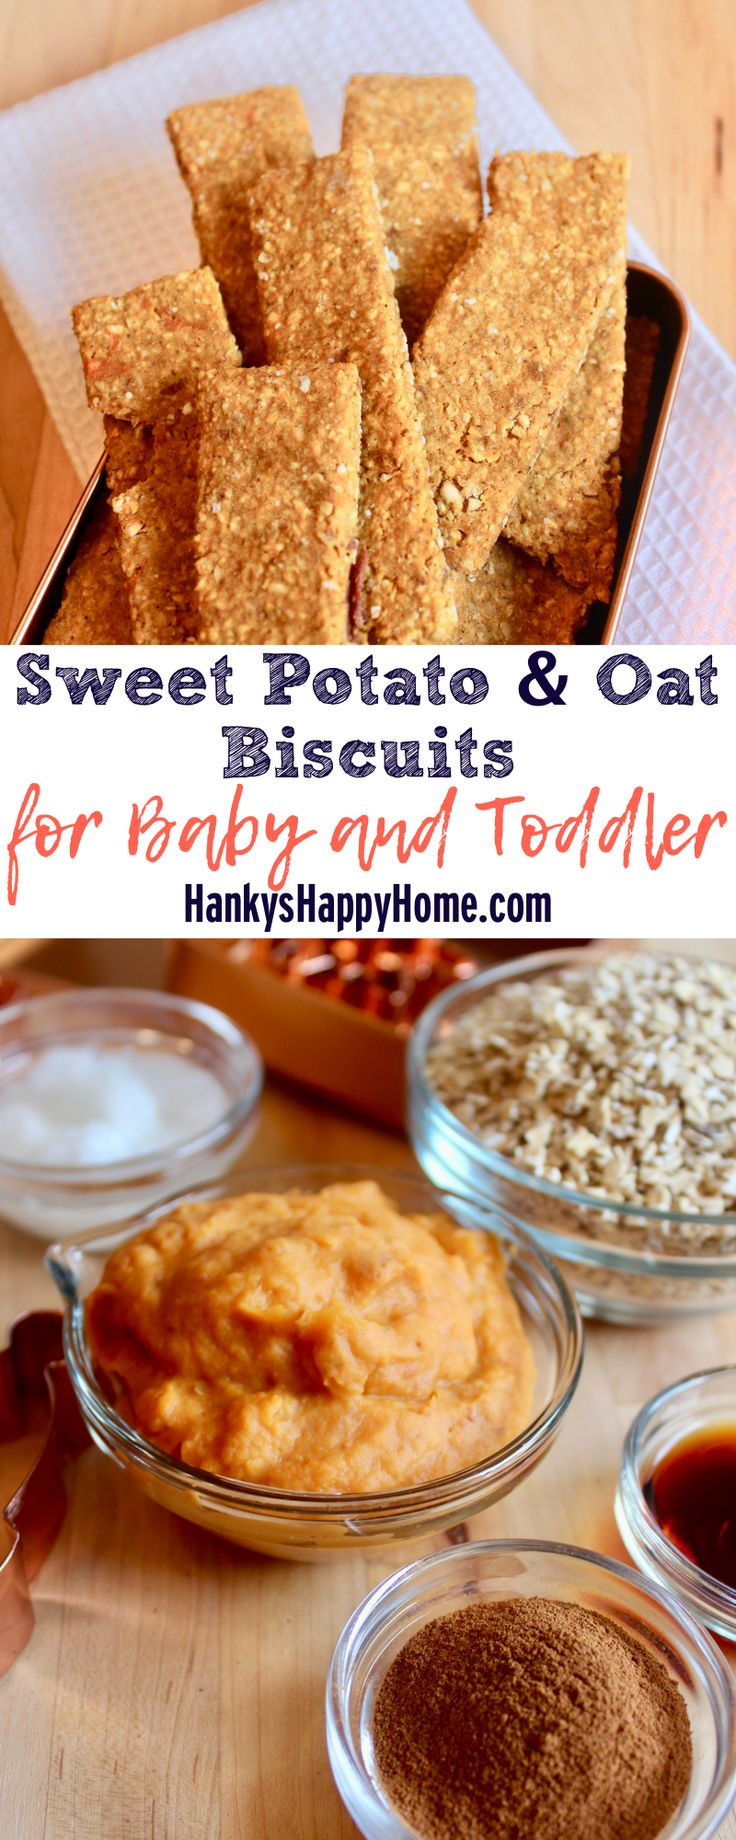 Sweet Potato & Oat Biscuits combine yummy sweet potatoes with hearty oats. Make them as easy finger food or a homemade teething biscuit.